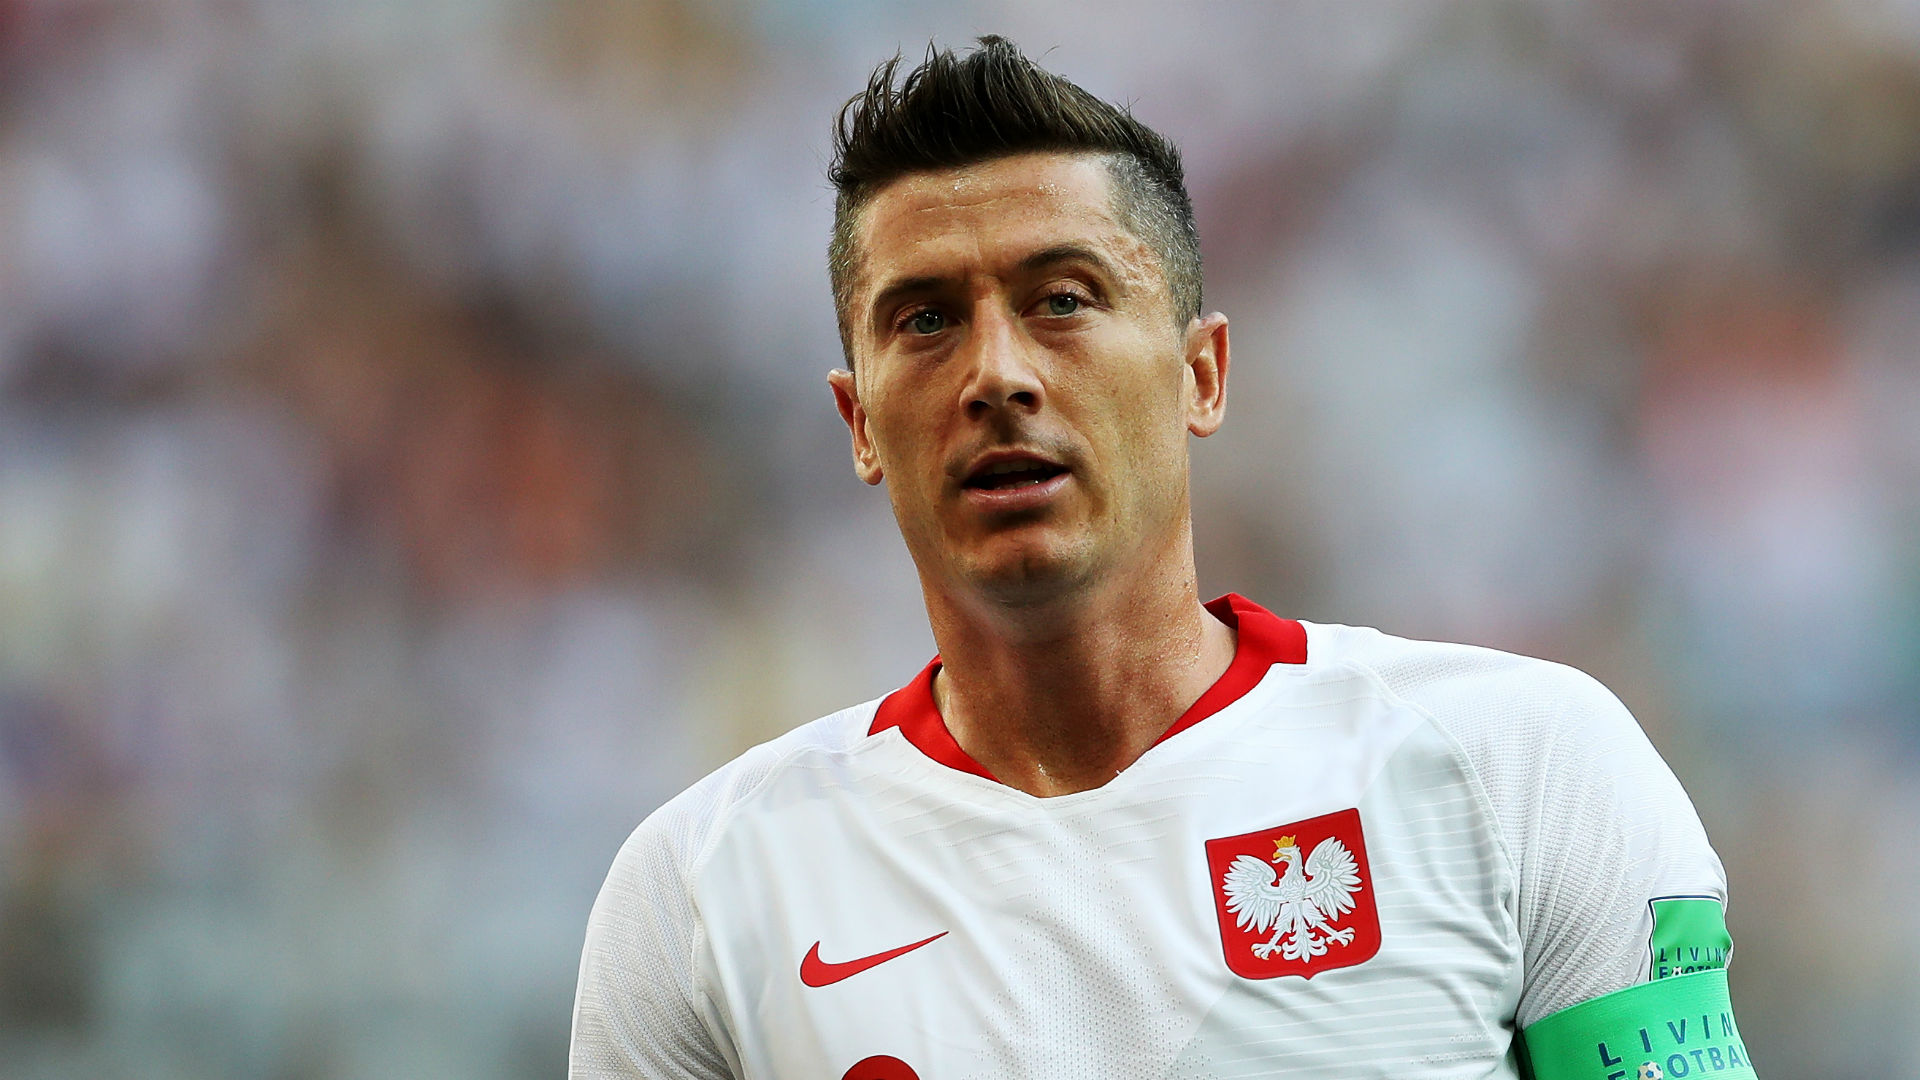 'Lewandowski can hurt you' - Southgate wary of Poland superstar after England's World Cup qualifying draw